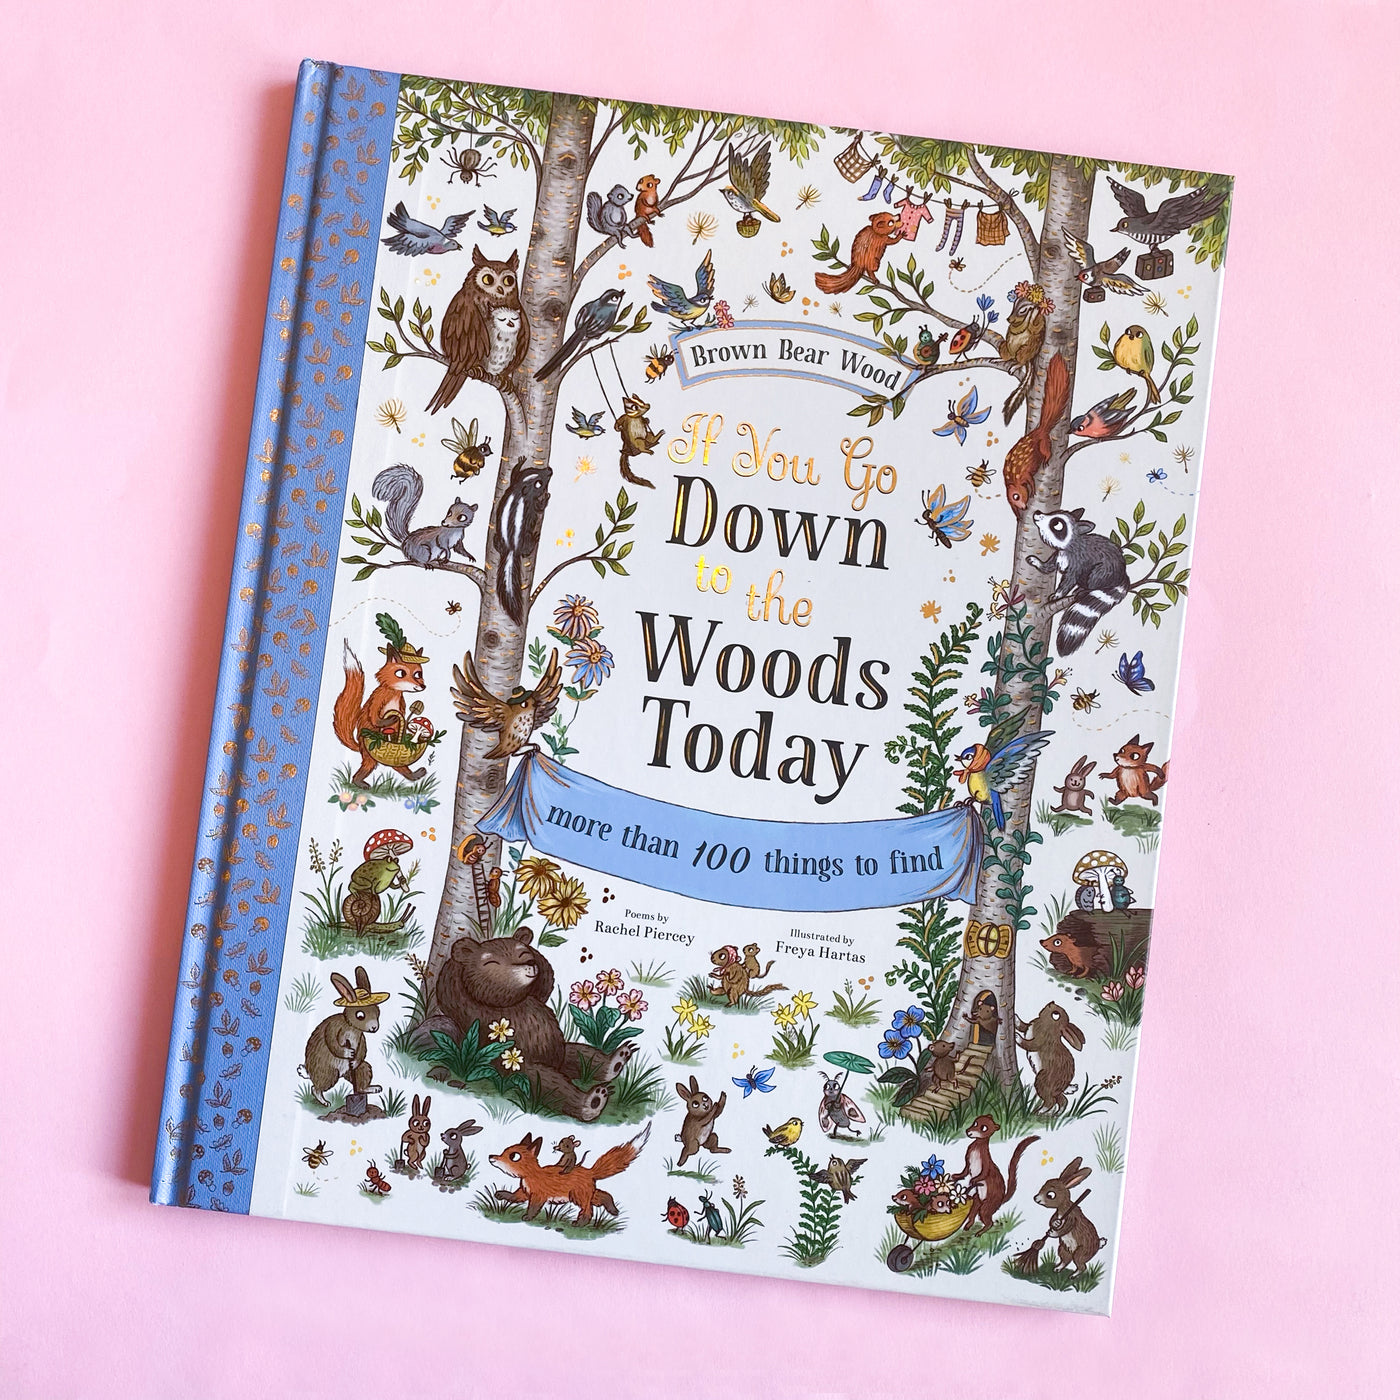 If You Go Down to The Woods Today by Rachel Piercey and Freya Hartas